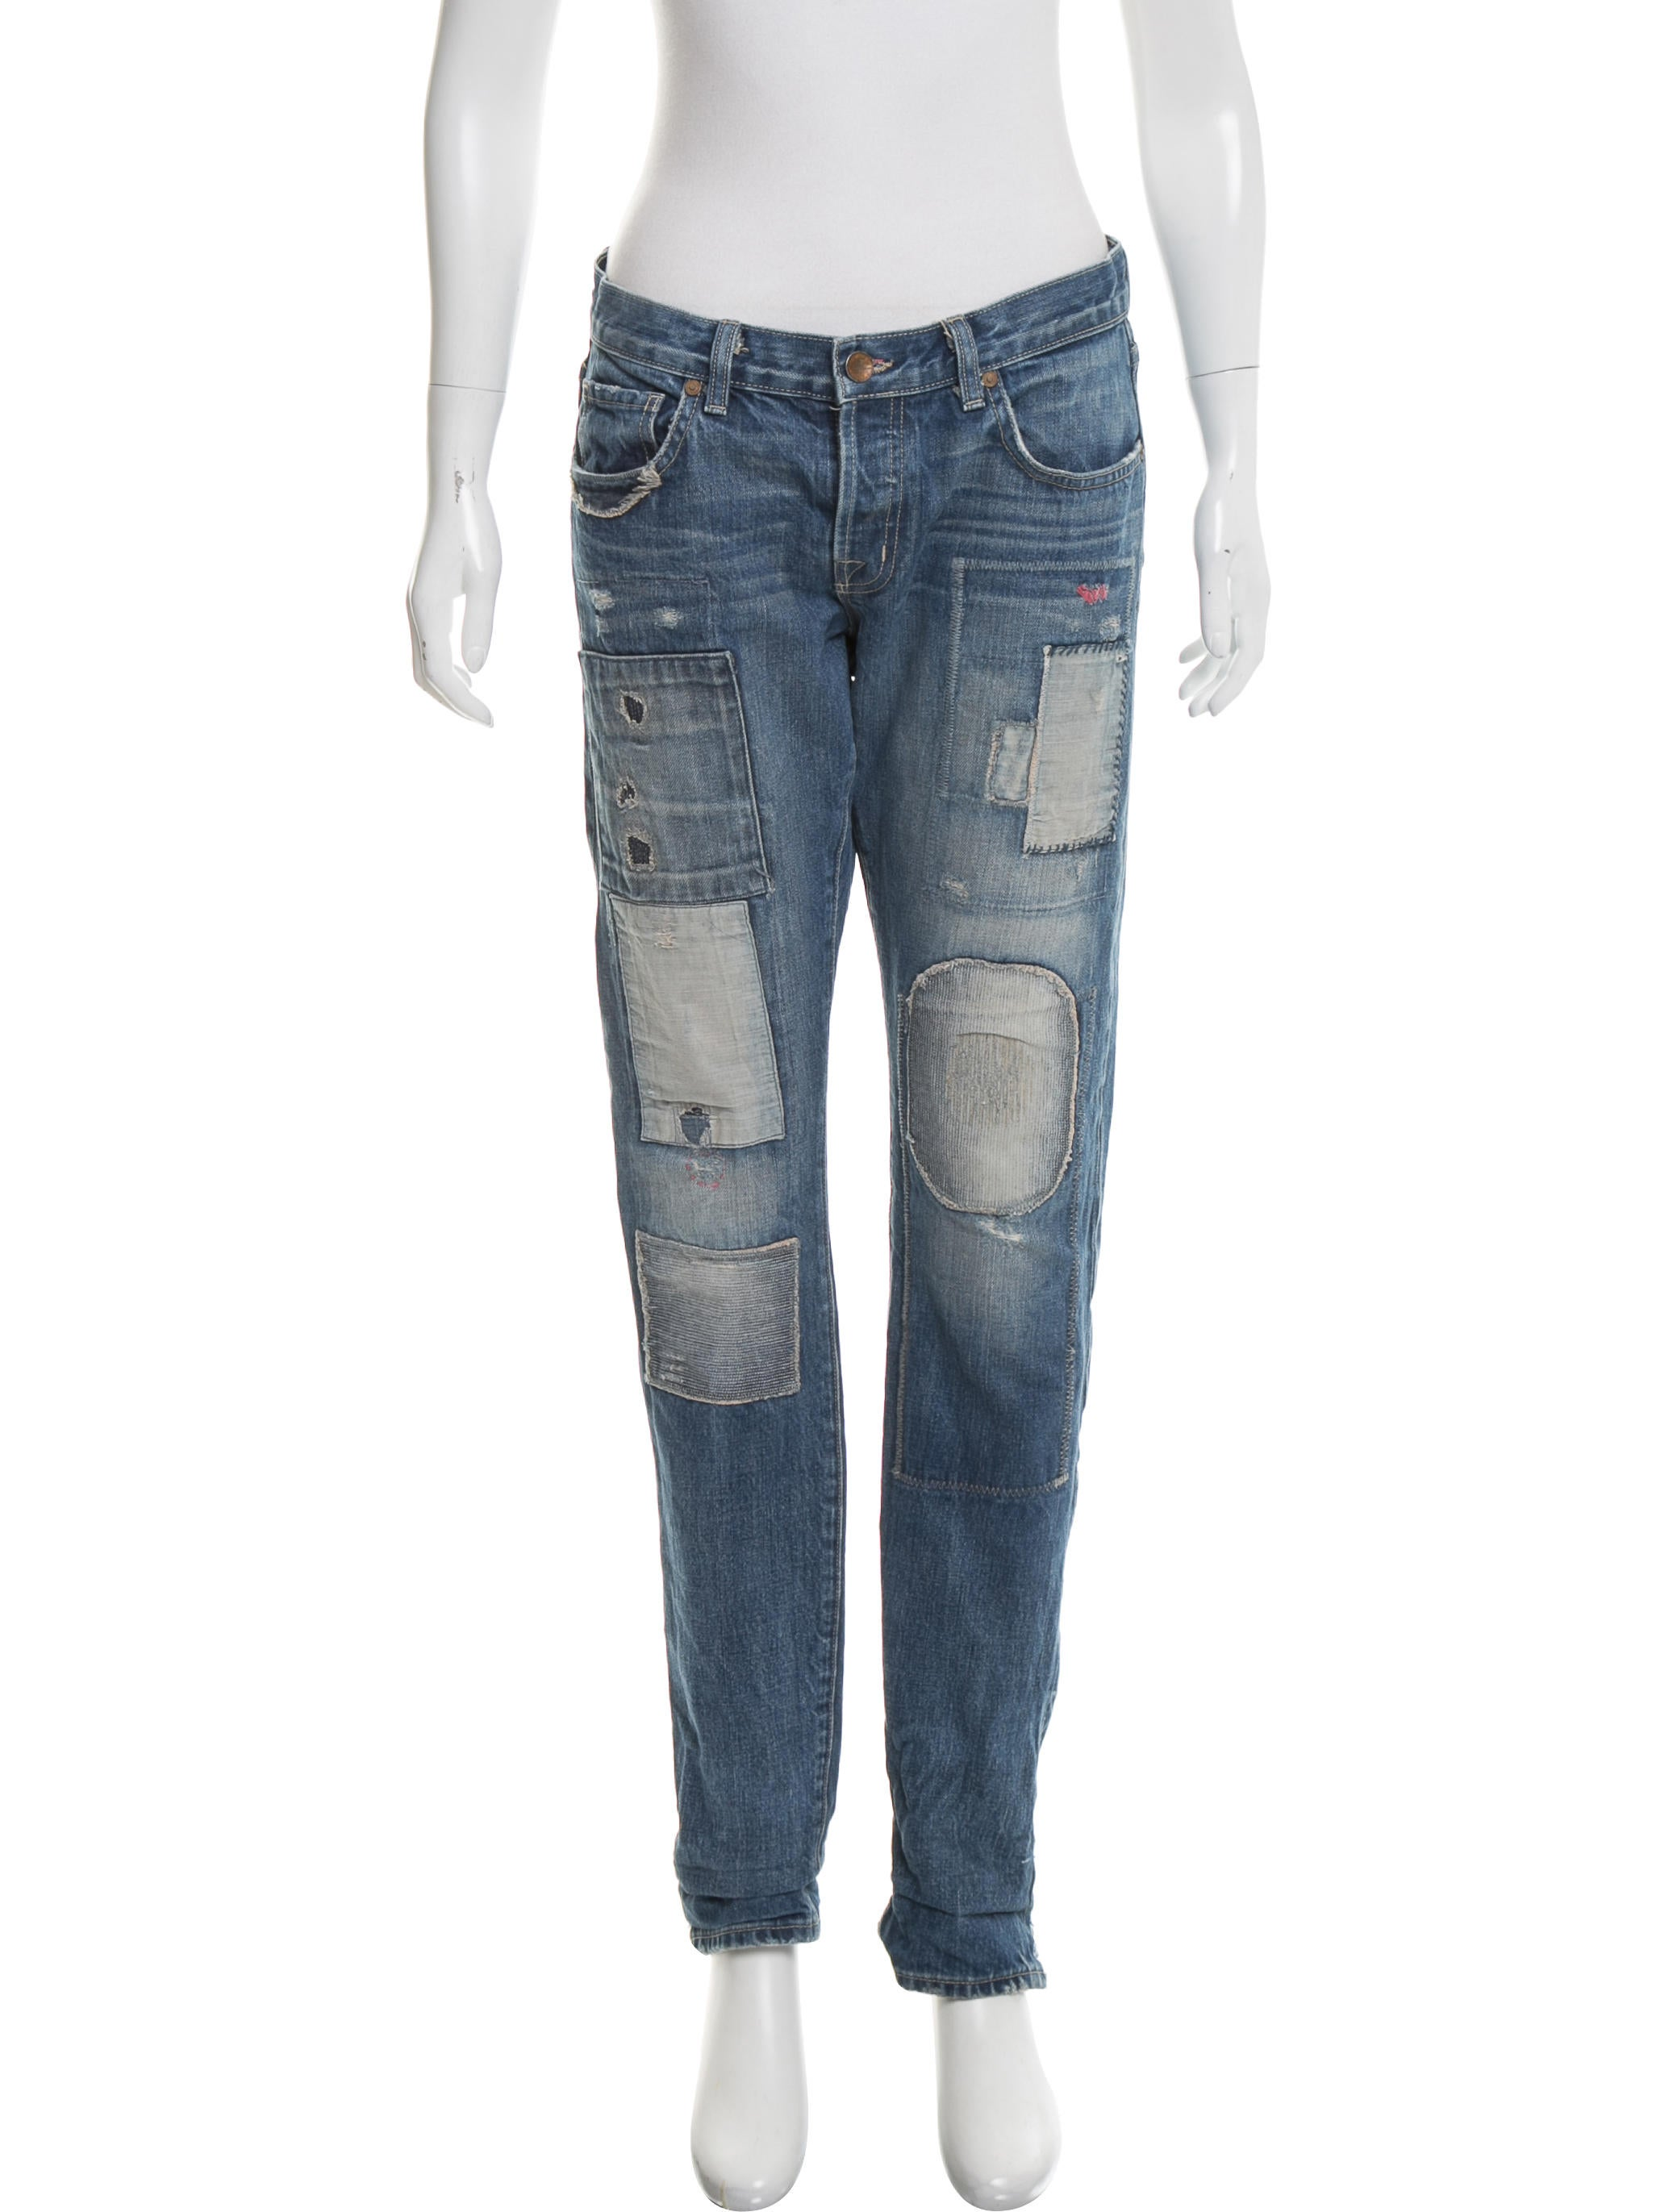 j brand mid rise distressed jeans clothing wjb29703. Black Bedroom Furniture Sets. Home Design Ideas